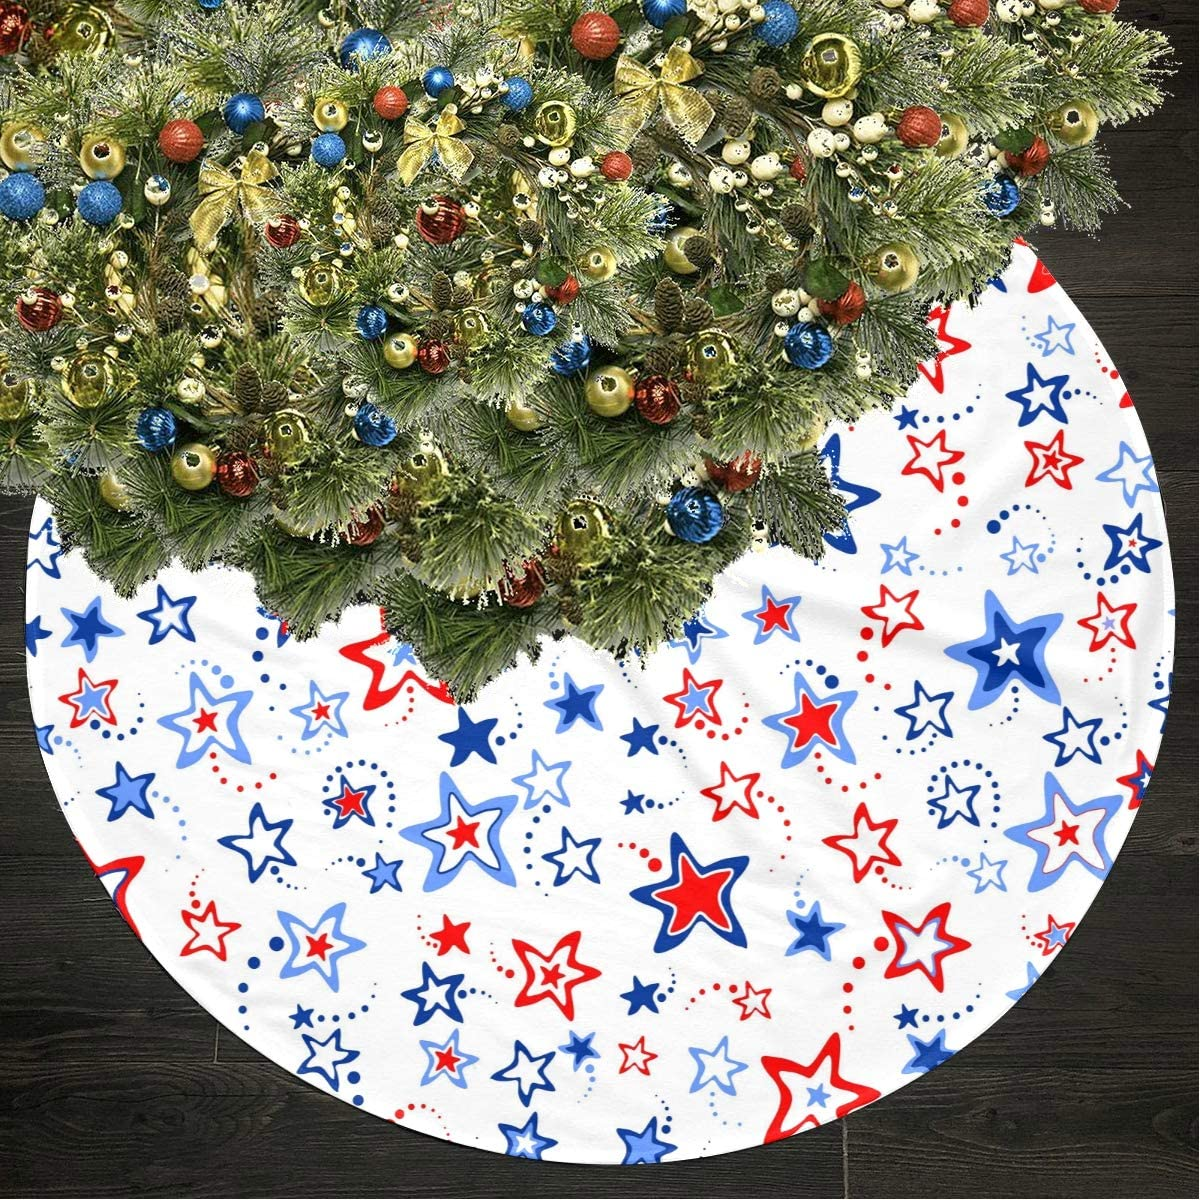 Jnseff Christmas Tree Skirt 4th July Illustration Print Tree Skirts Polyester Kids Christmas Tree Skirt Carpet for Party Holiday Decorations Xmas Ornaments